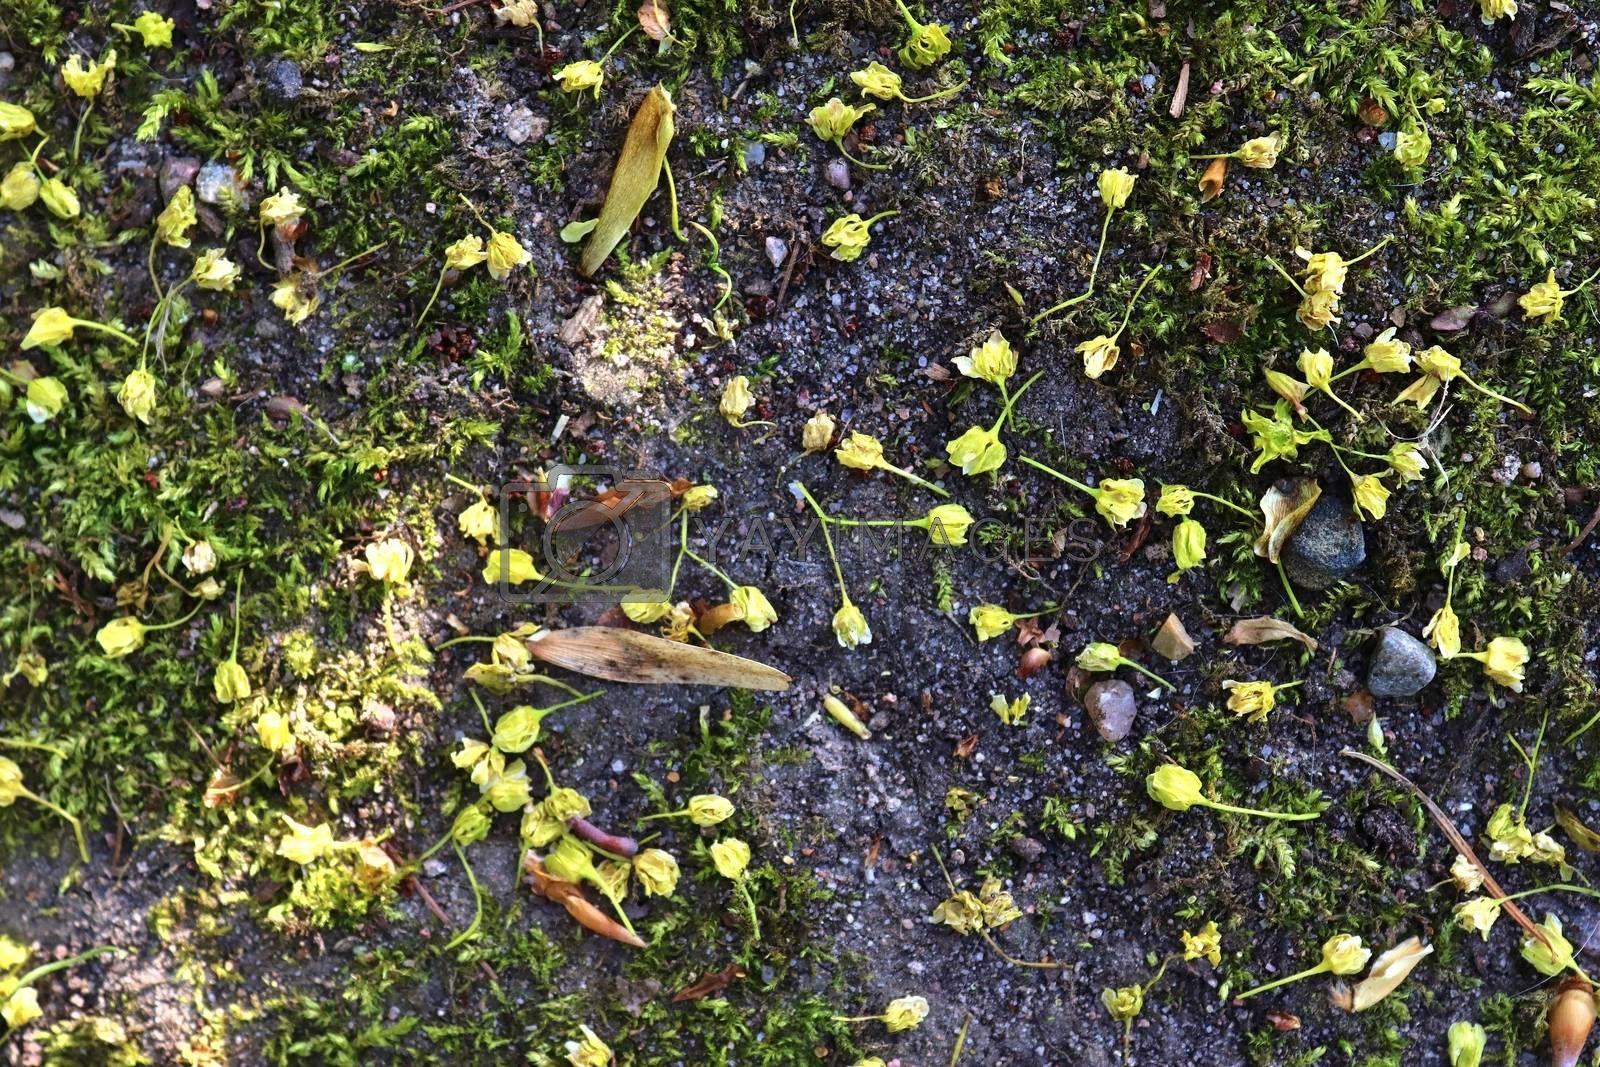 Detailed close up view on a forest ground texture with moss and branches found in a european forest